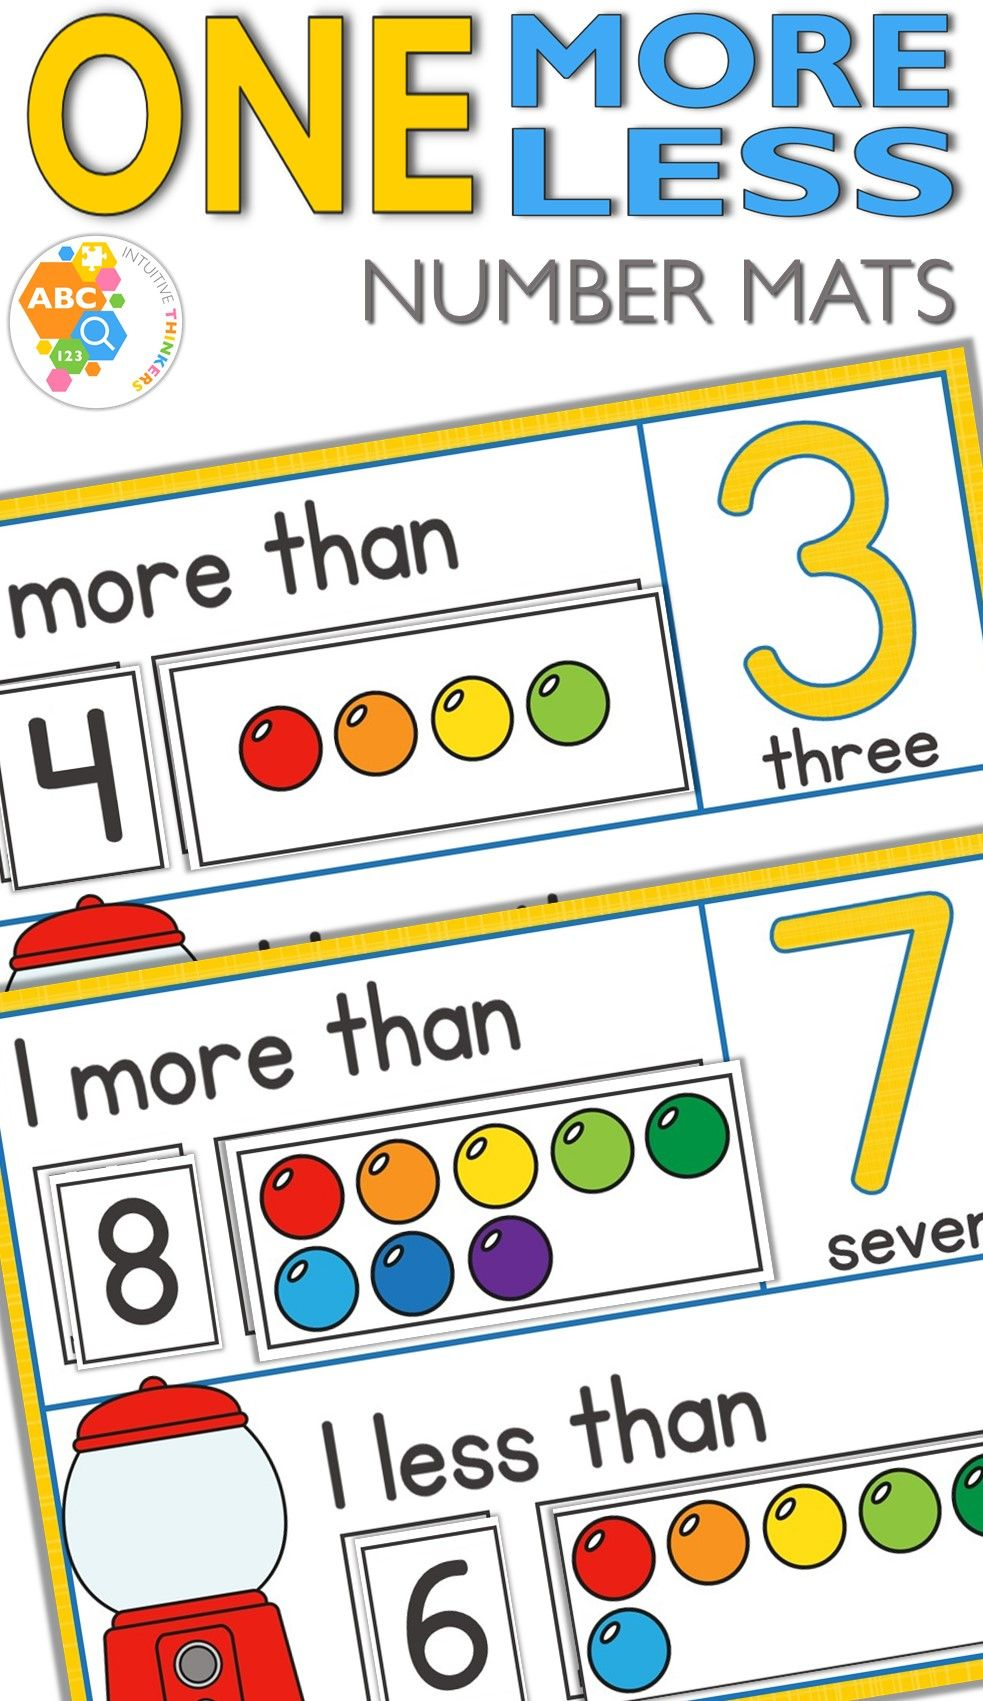 Hese One More One Less Gumball Activity Mats 1 20 Will Help Children Learn To Count One More And On Number Activities Totschool Activities Preschool Activities [ 1701 x 983 Pixel ]